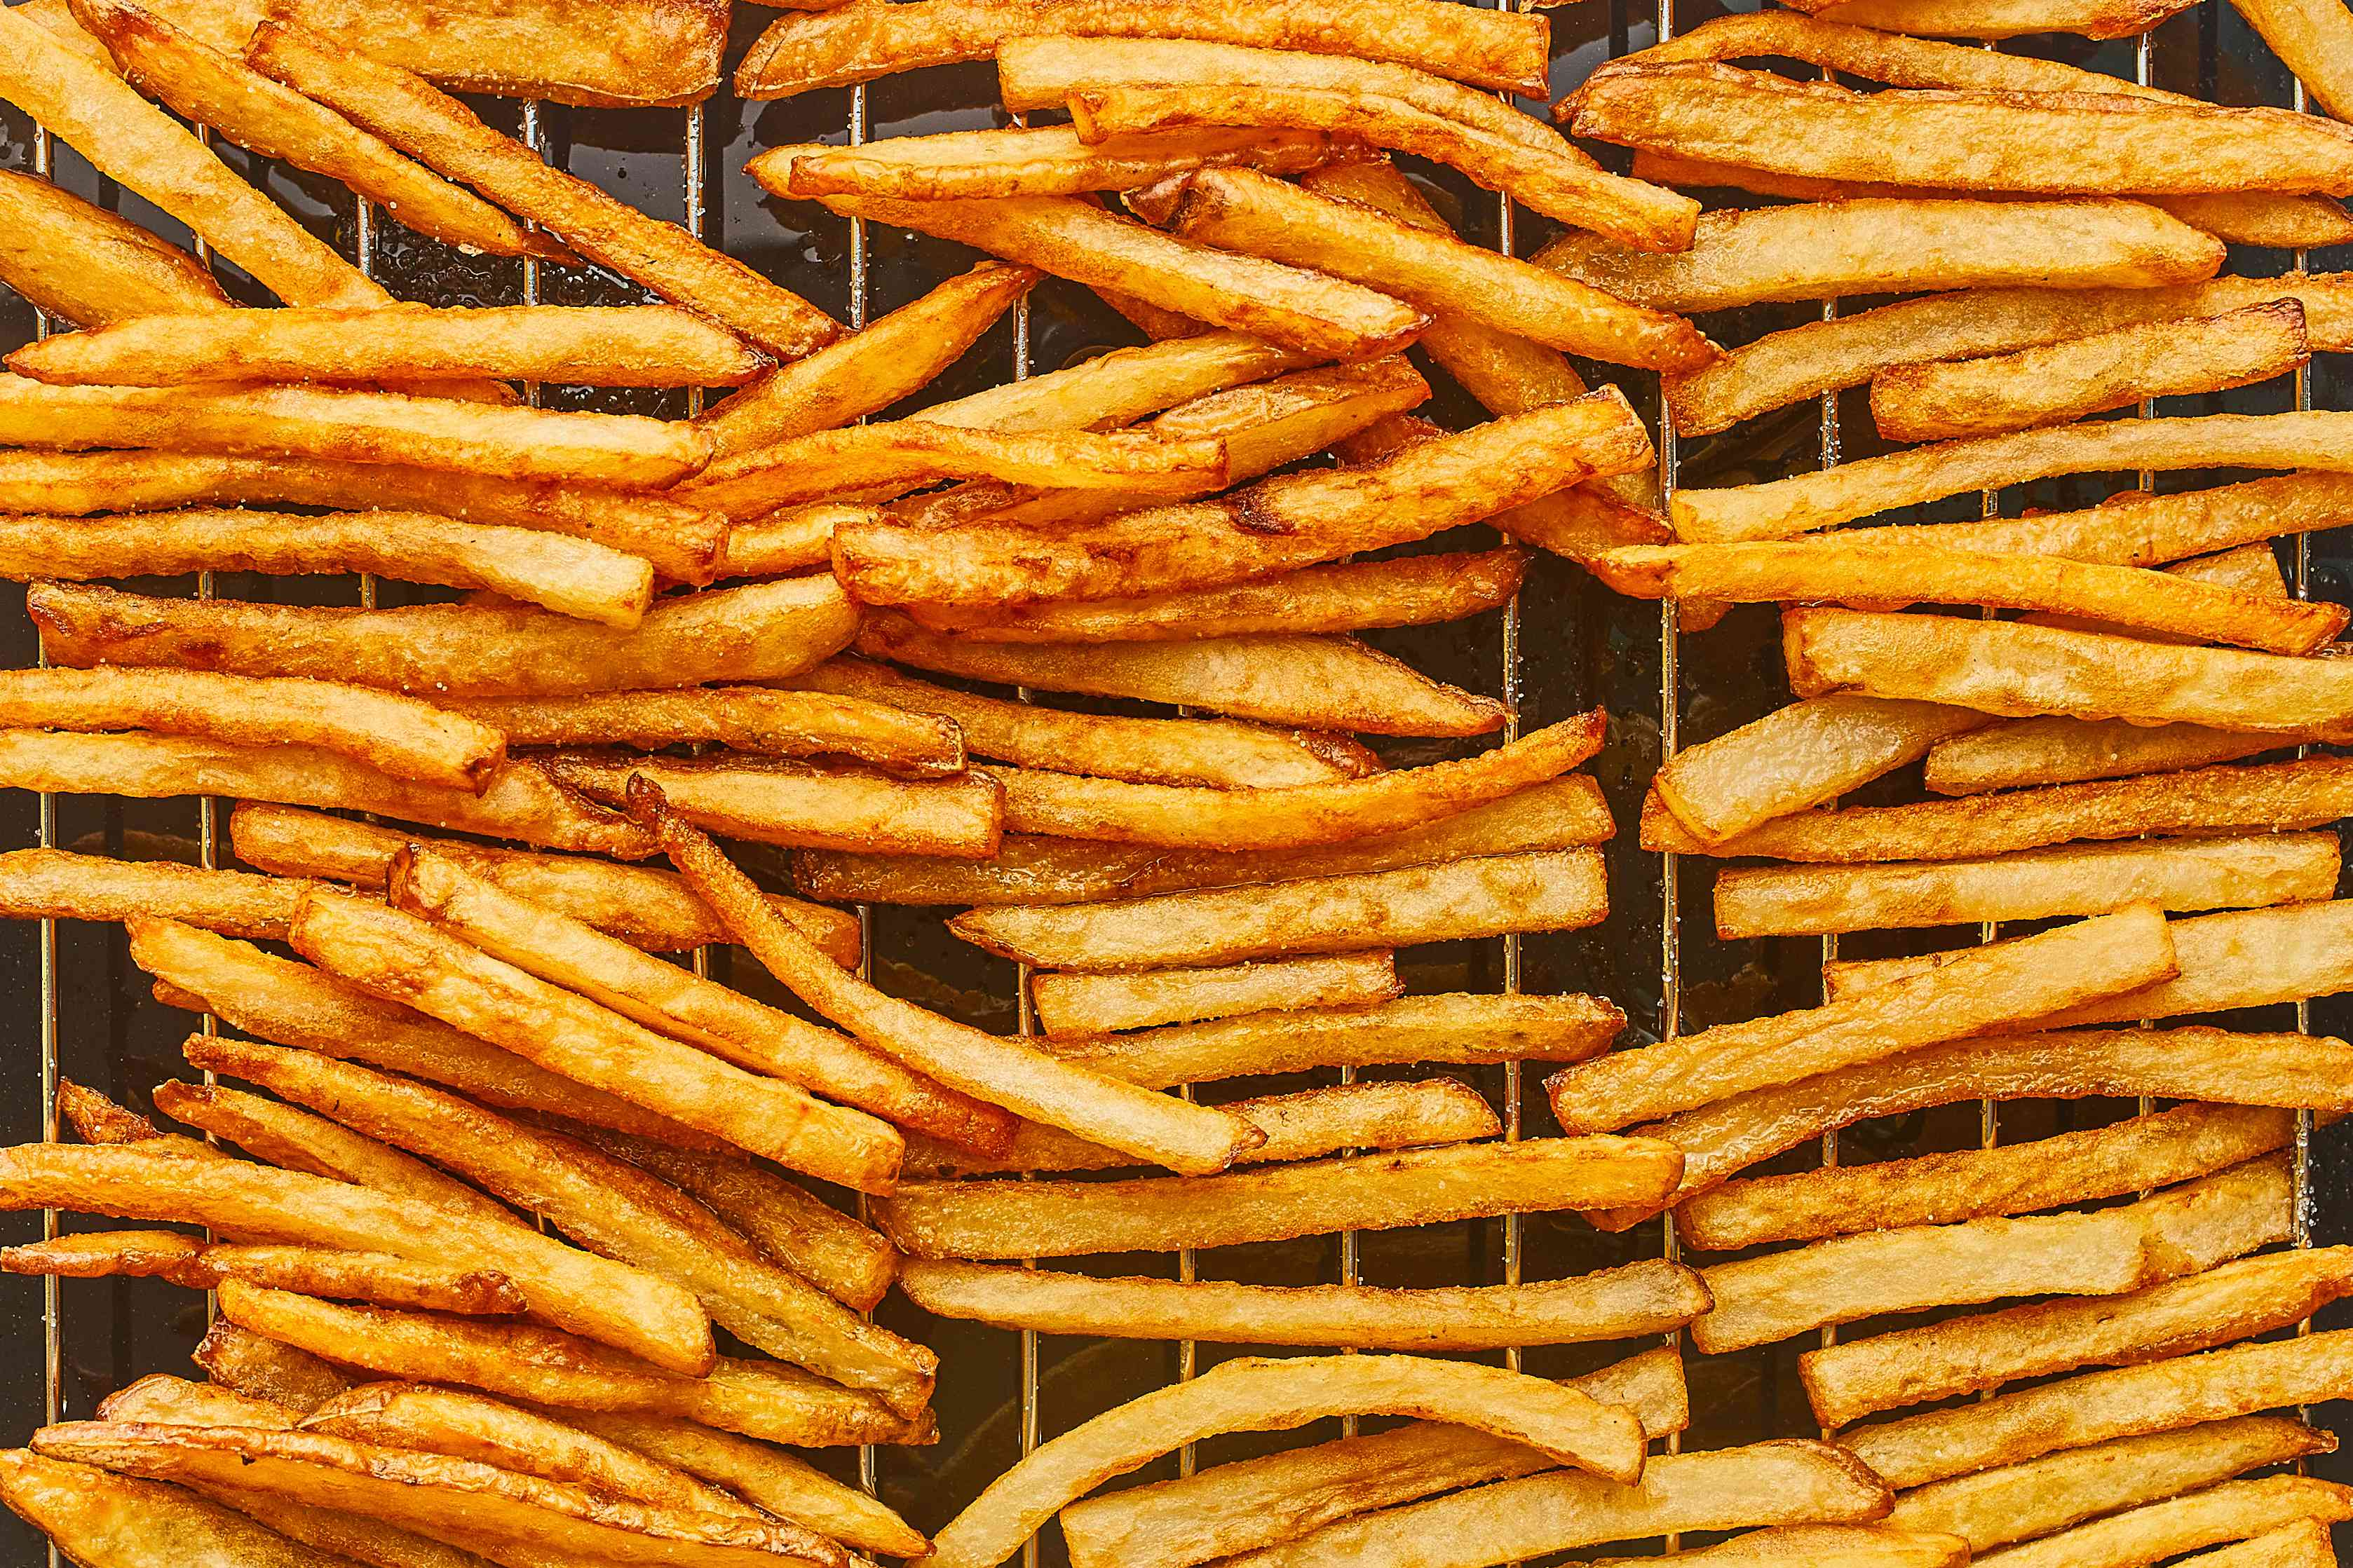 French fries draining on a rack